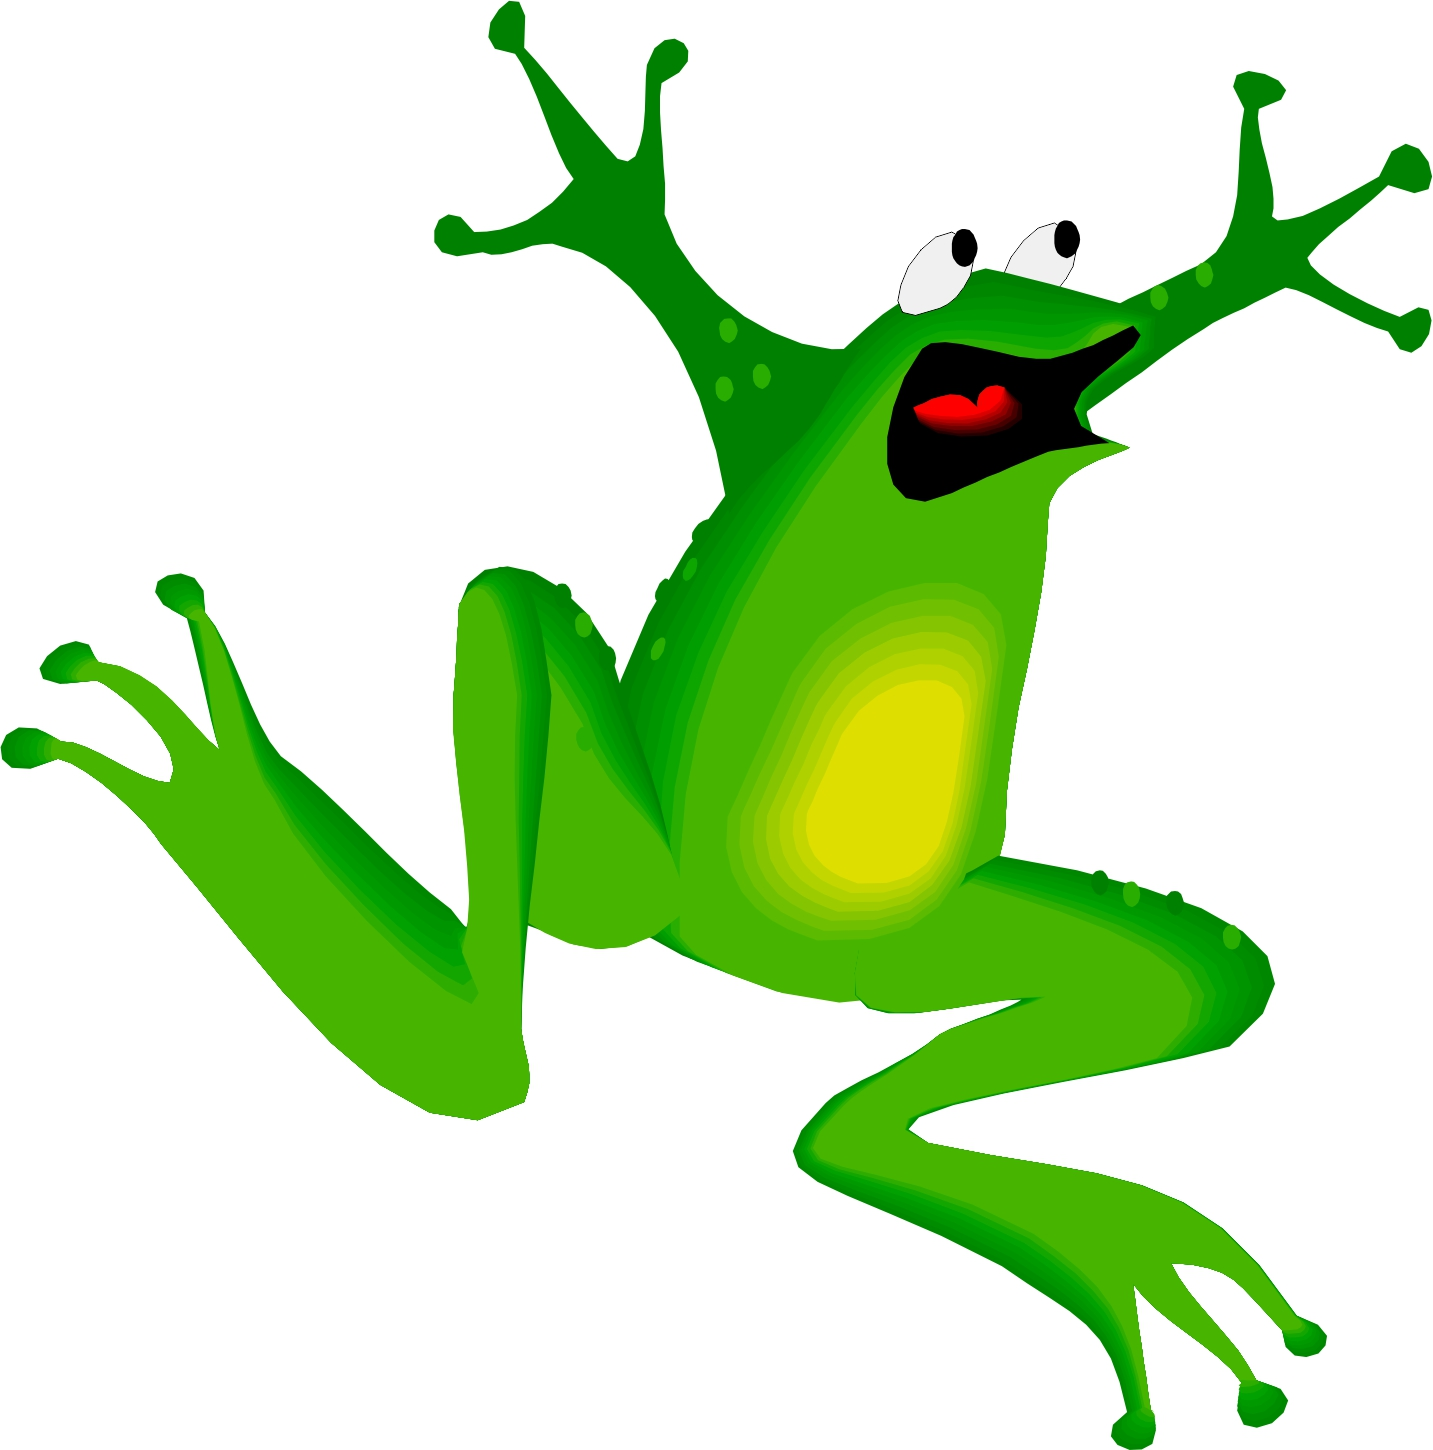 why frogs jump Frogs are known for their ability to leap and jump long-legged frogs use quick, powerful jumps to escape from predators a jumping frog can leap away from danger in an instant and hide safely in the water not all frog species can jump frogs with shorter legs walk, crawl, or only hop short distances.